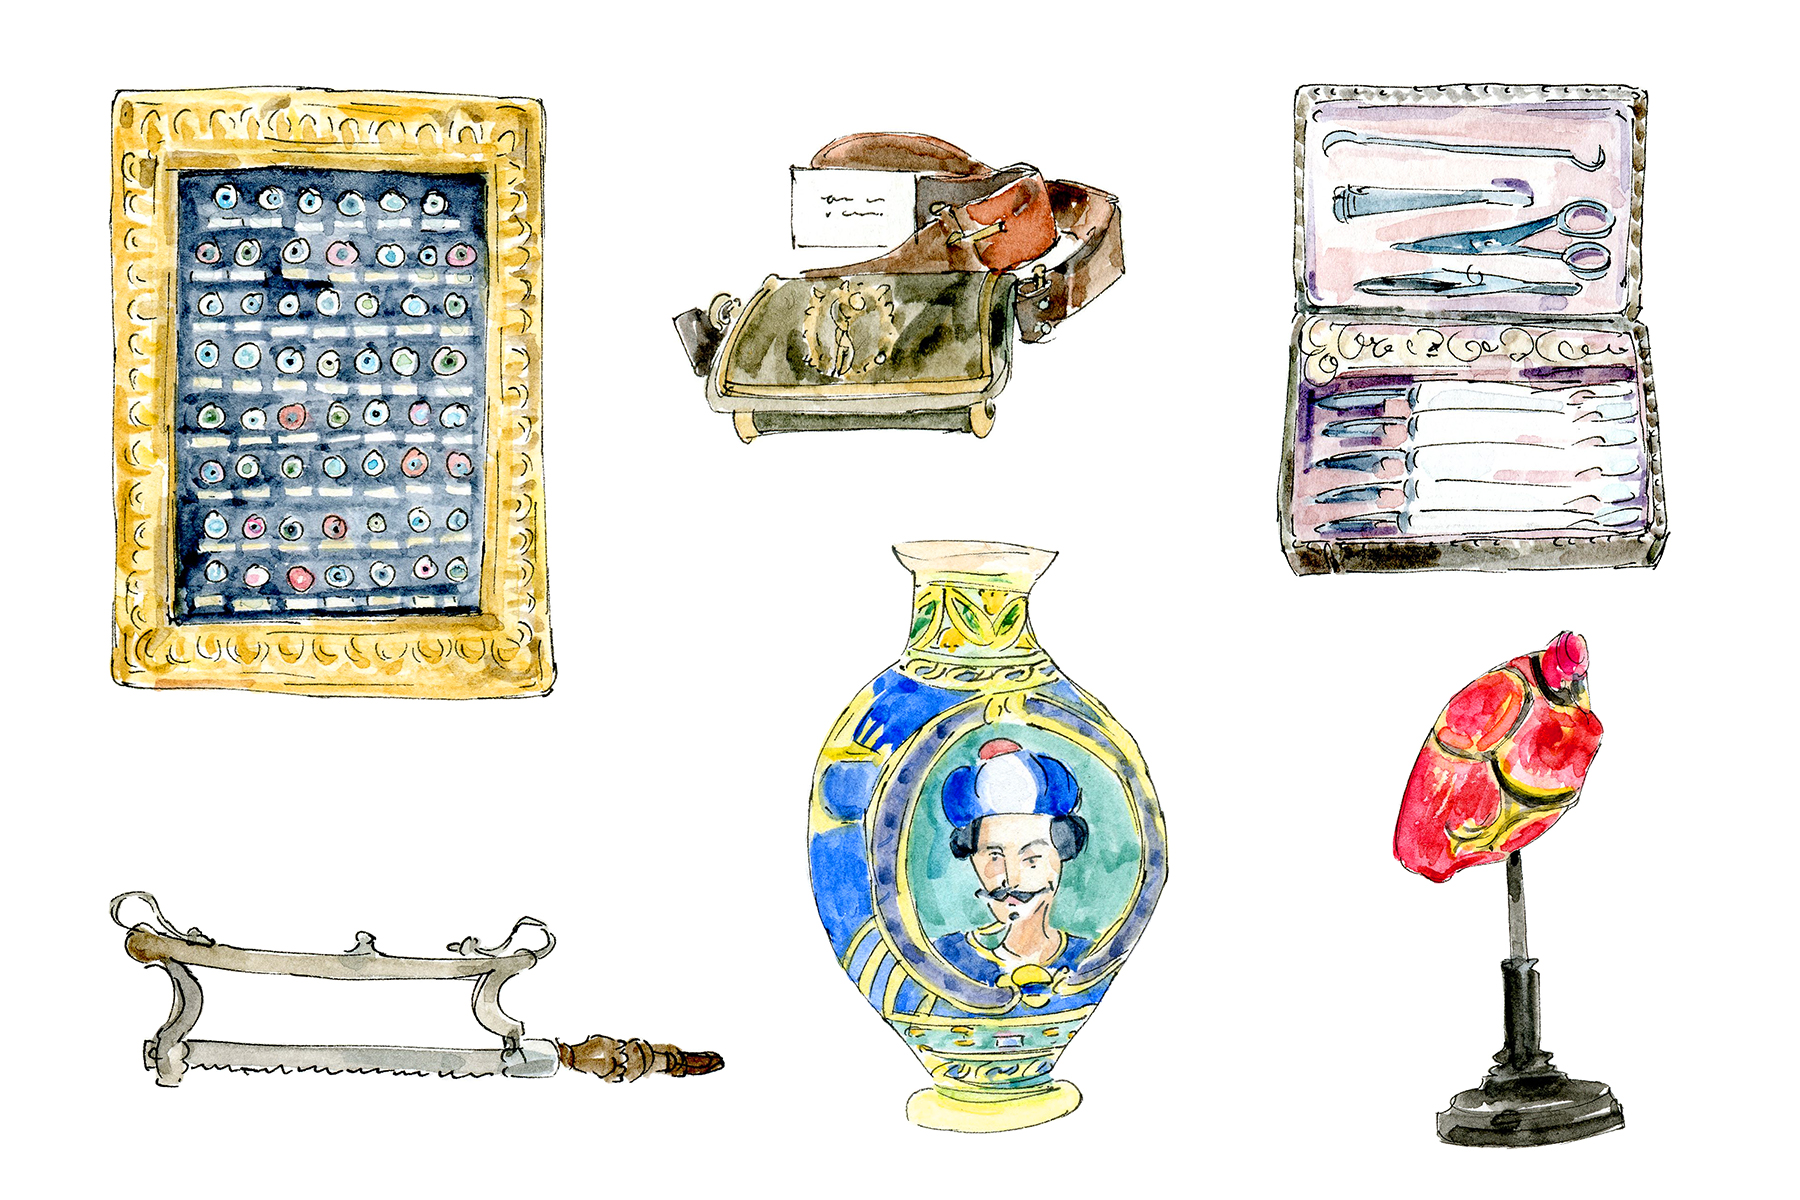 An illustration of an array of objects from the museum's collection, including an urn, a set of medical instruments, a saw, an eye chart.